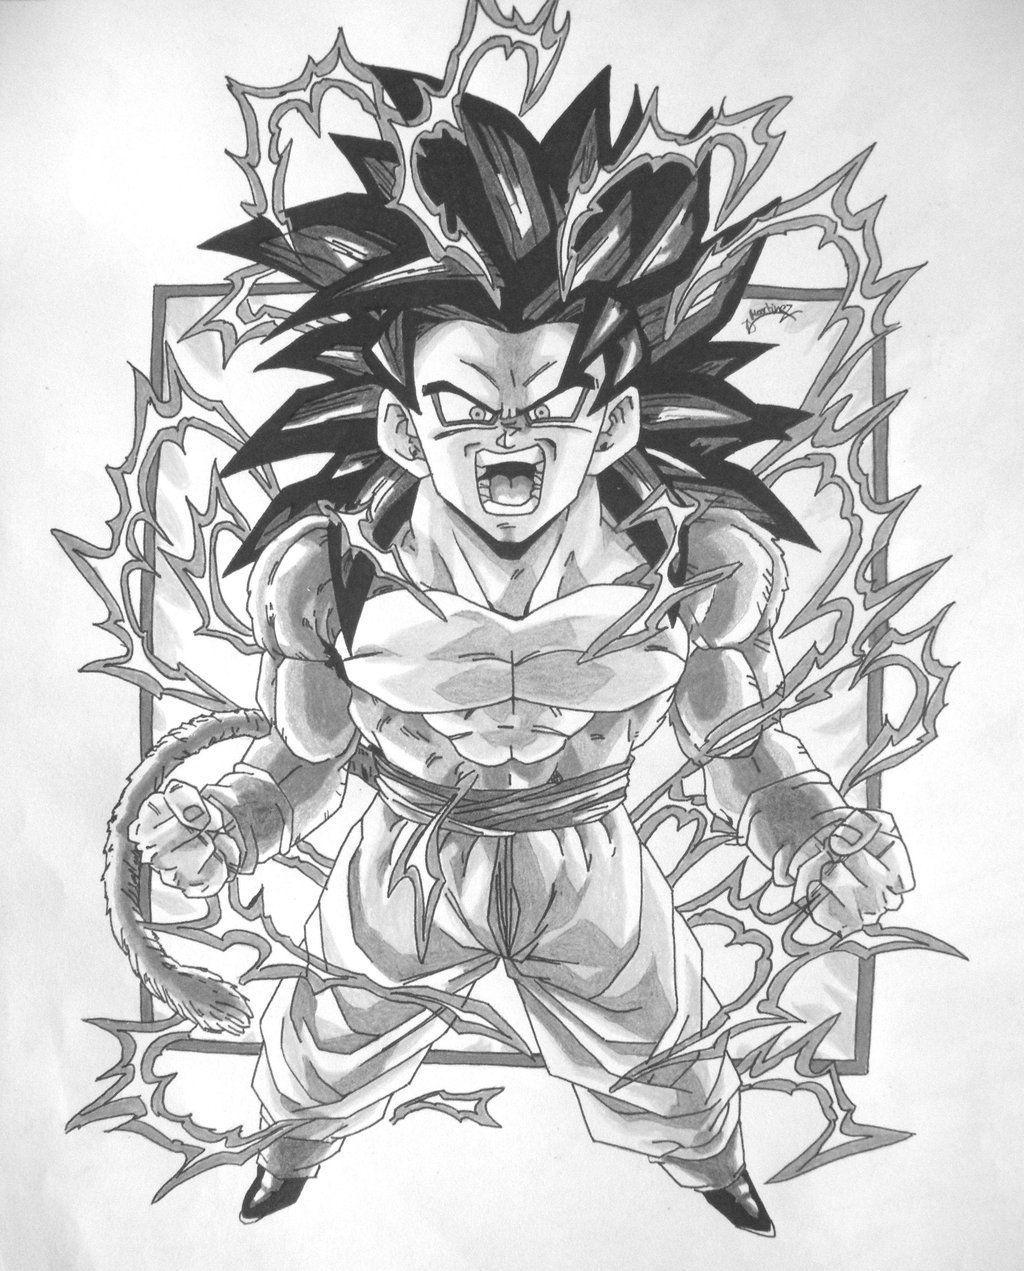 dbz gt character drawings | Dragonball GT Black and White Goku SS4 ...